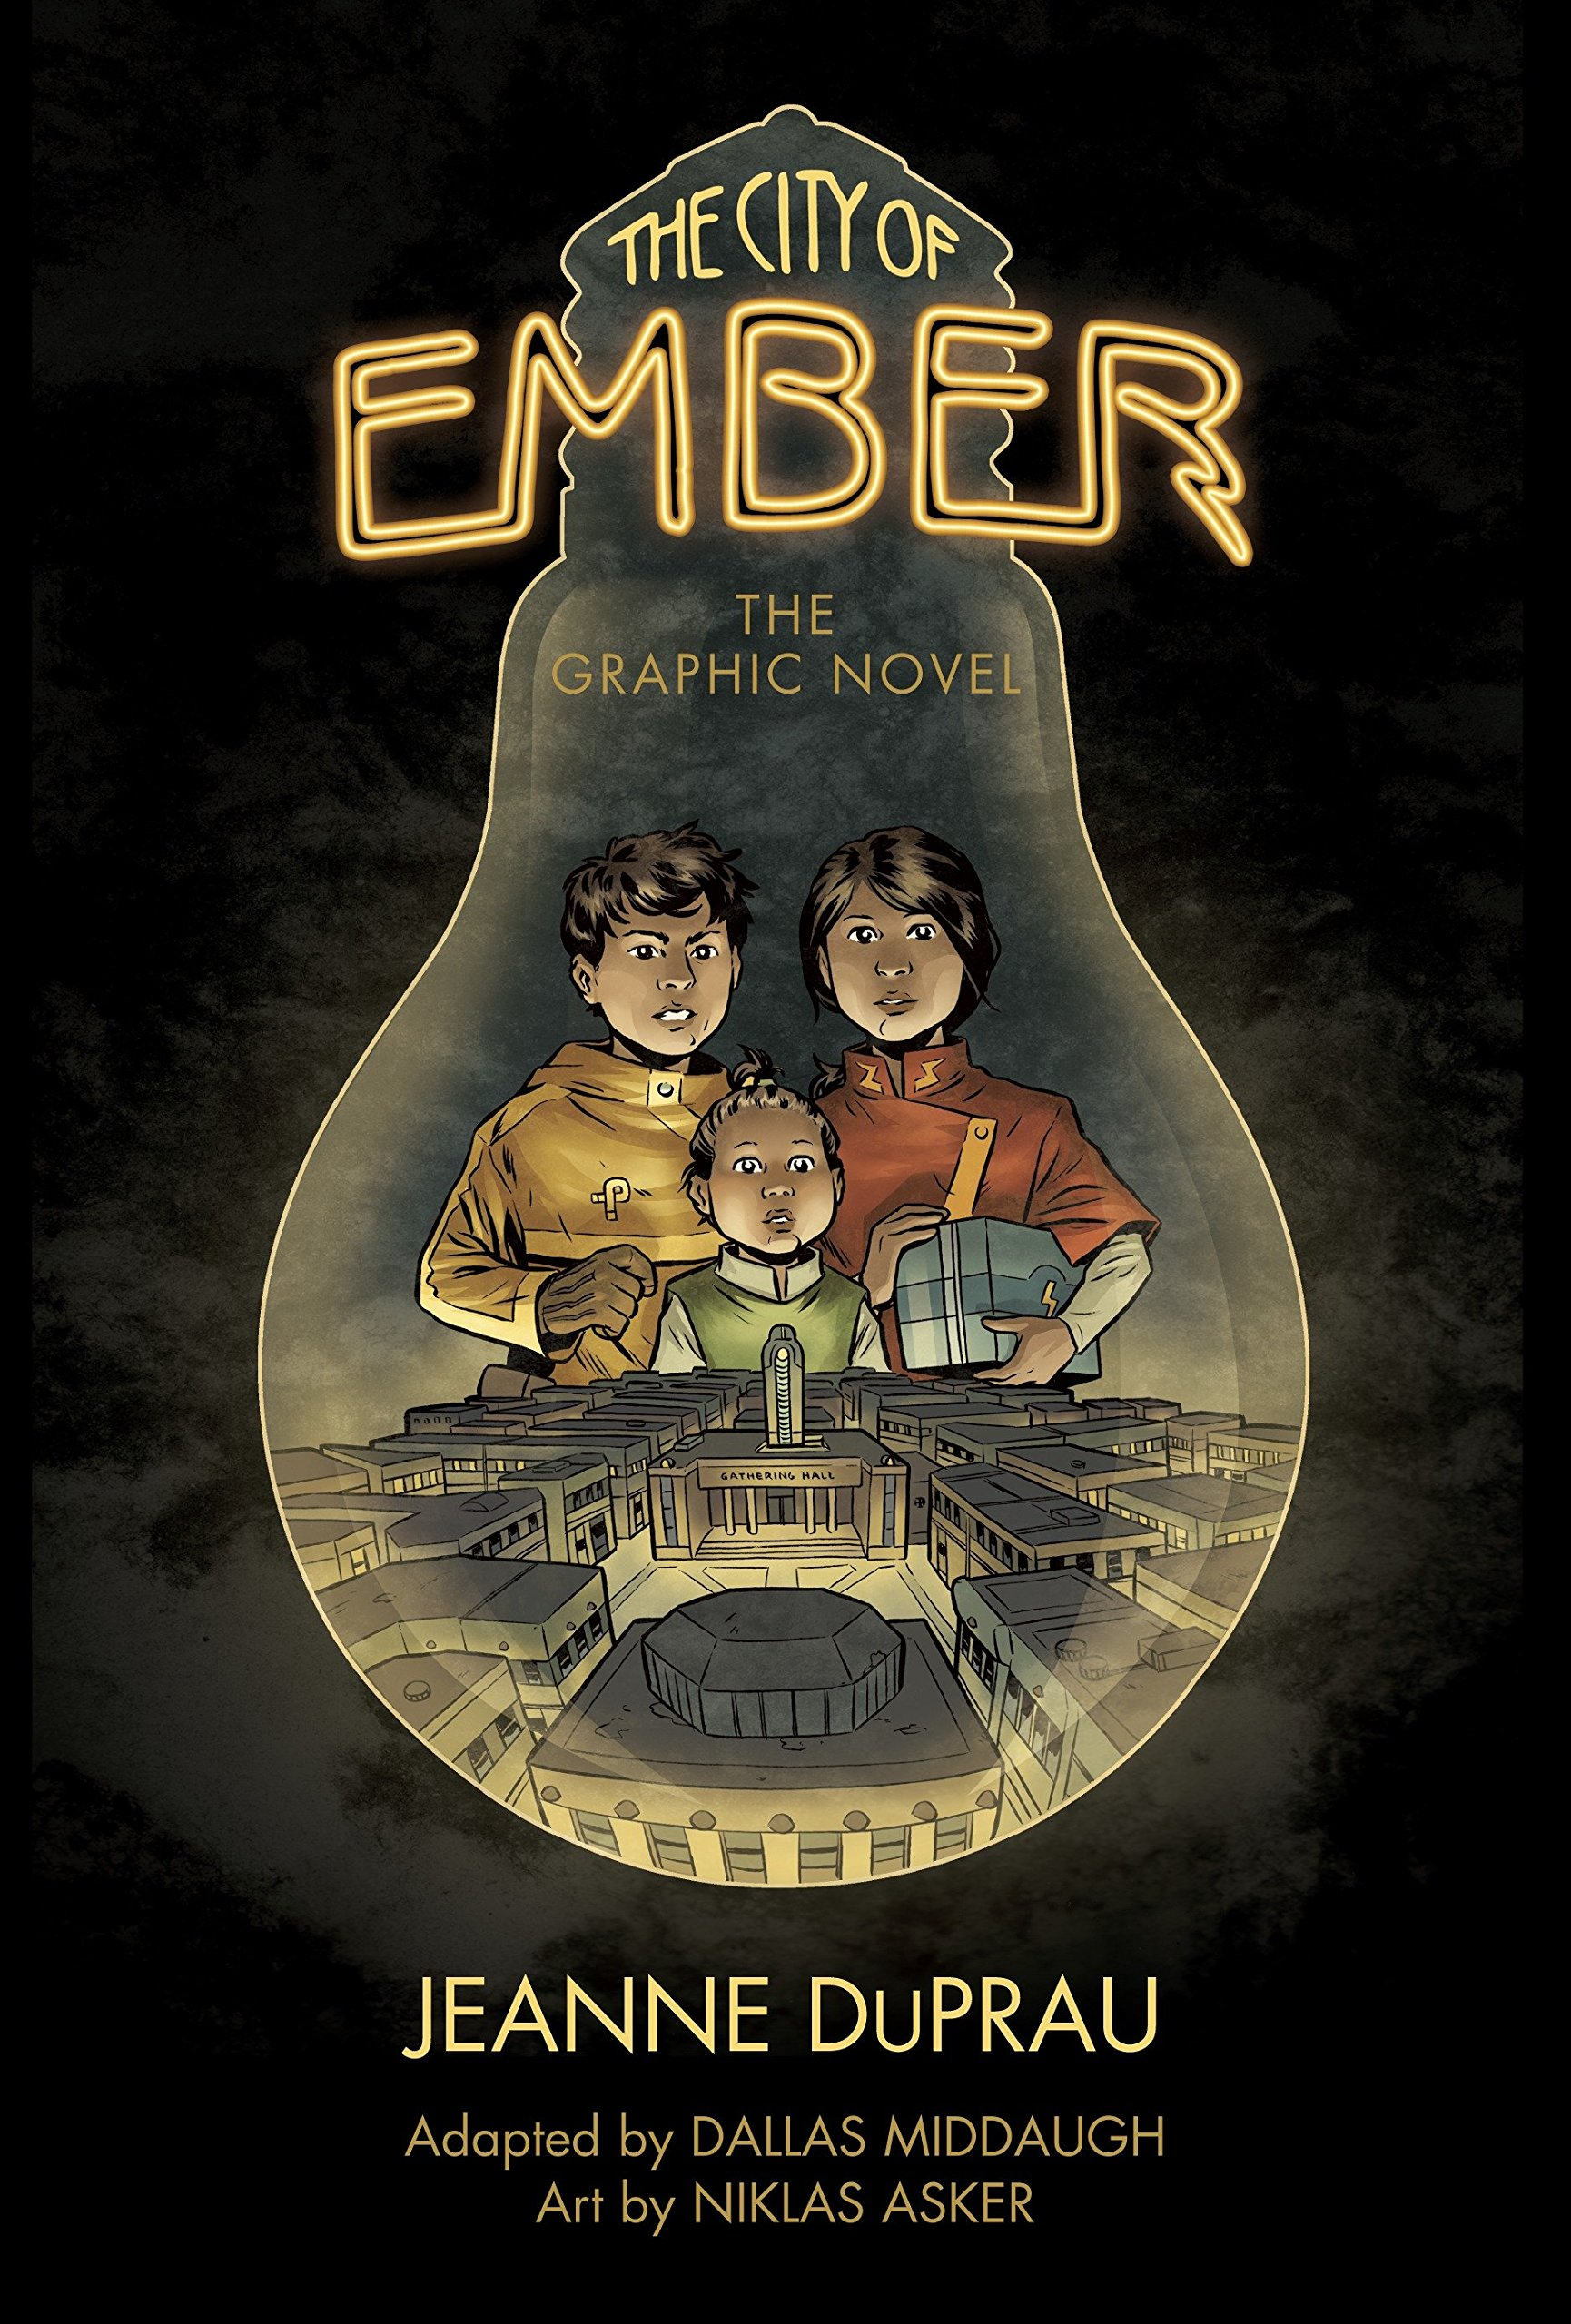 The City of Ember: The Graphic Novel: Middaugh, Dallas, DuPrau, Jeanne,  Asker, Niklas: 9780375867934: Amazon.com: Books